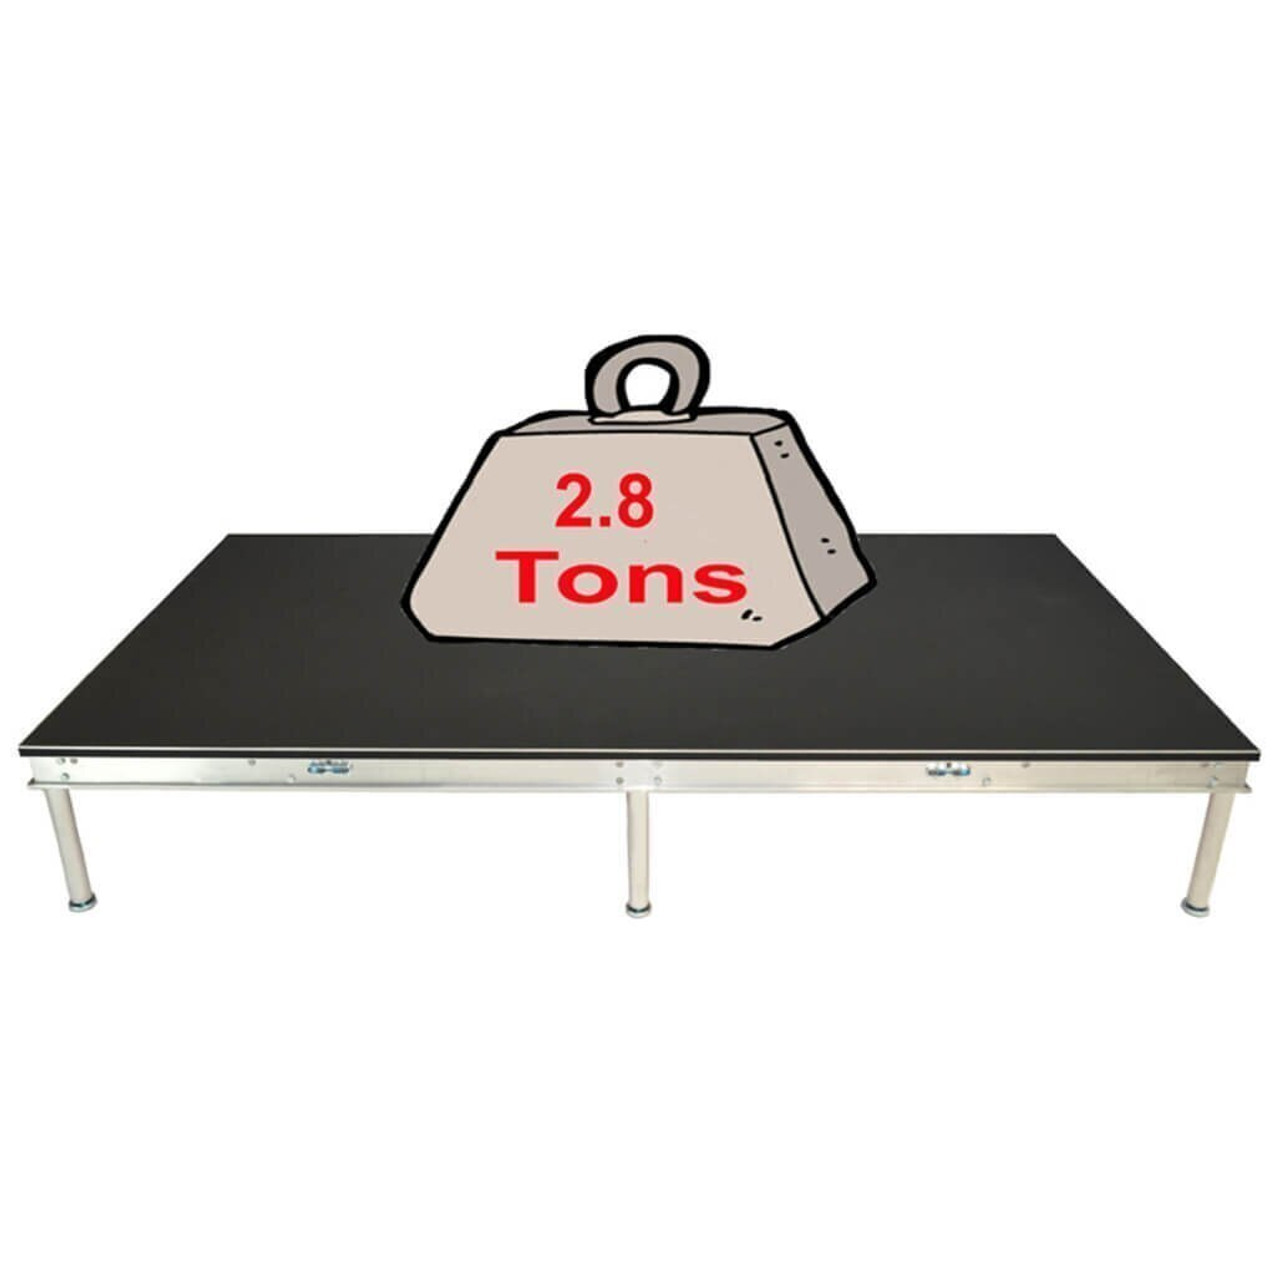 Top rated Quik Stage 8' x 16' High Portable Stage Package with Black Polyvinyl Non-Skid Surface. Additional Heights and Surfaces Available - Holds 2.8 tons per 4 x 8 or 1.4 tons per 4 x 4 when spread out evenly